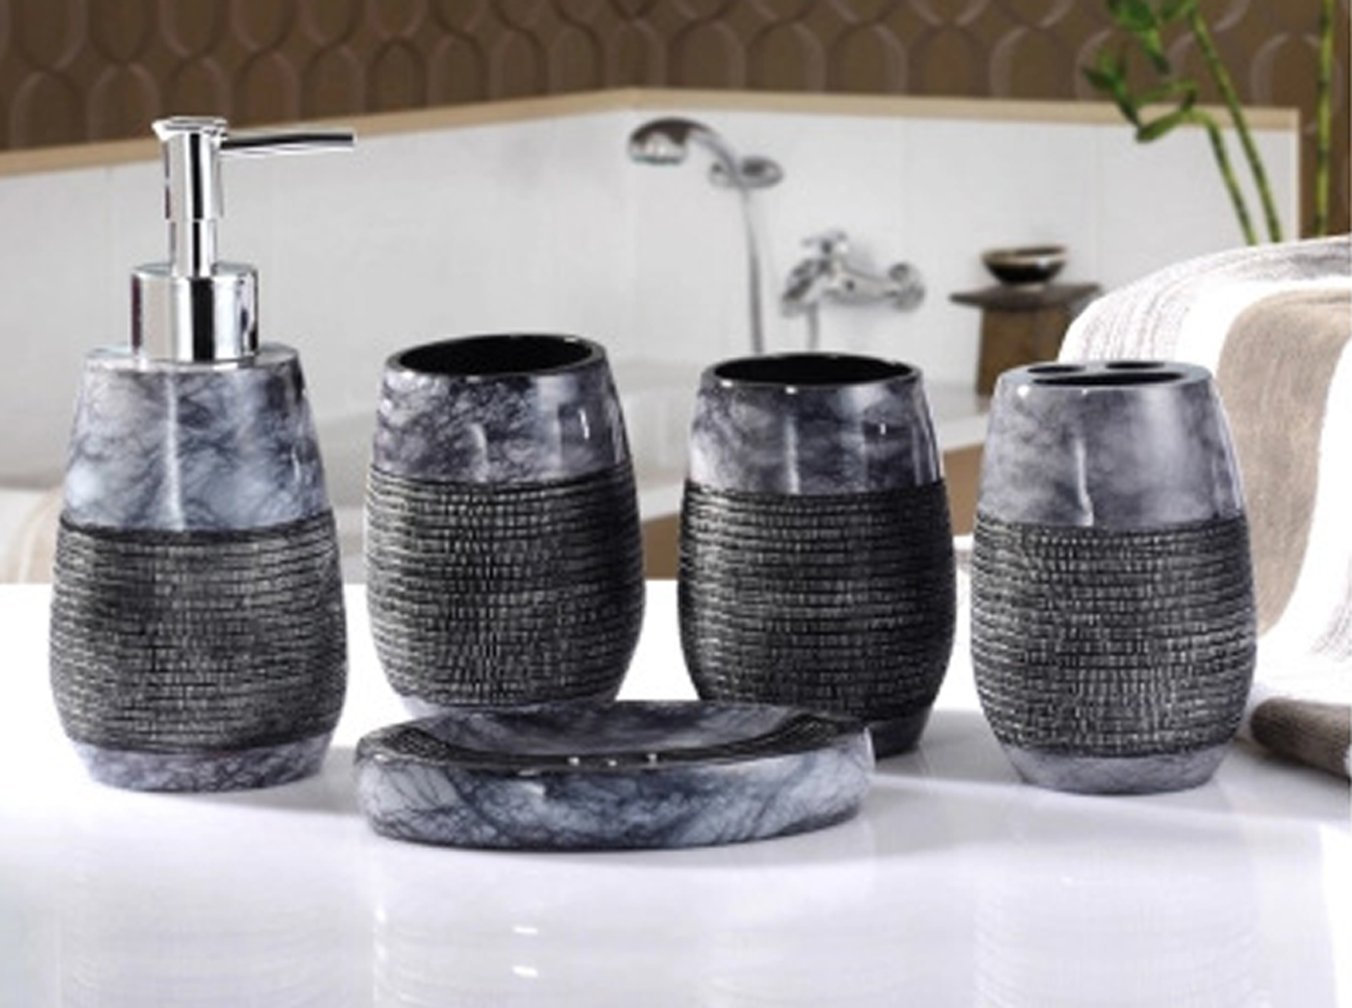 Amazon.com: Yiyida Elegant Modern Bathroom Set Durable Resin Bath Home Accessory Set Gravel Design Tumbler Soap dish Soap Dispenser Toothbrush holder ...